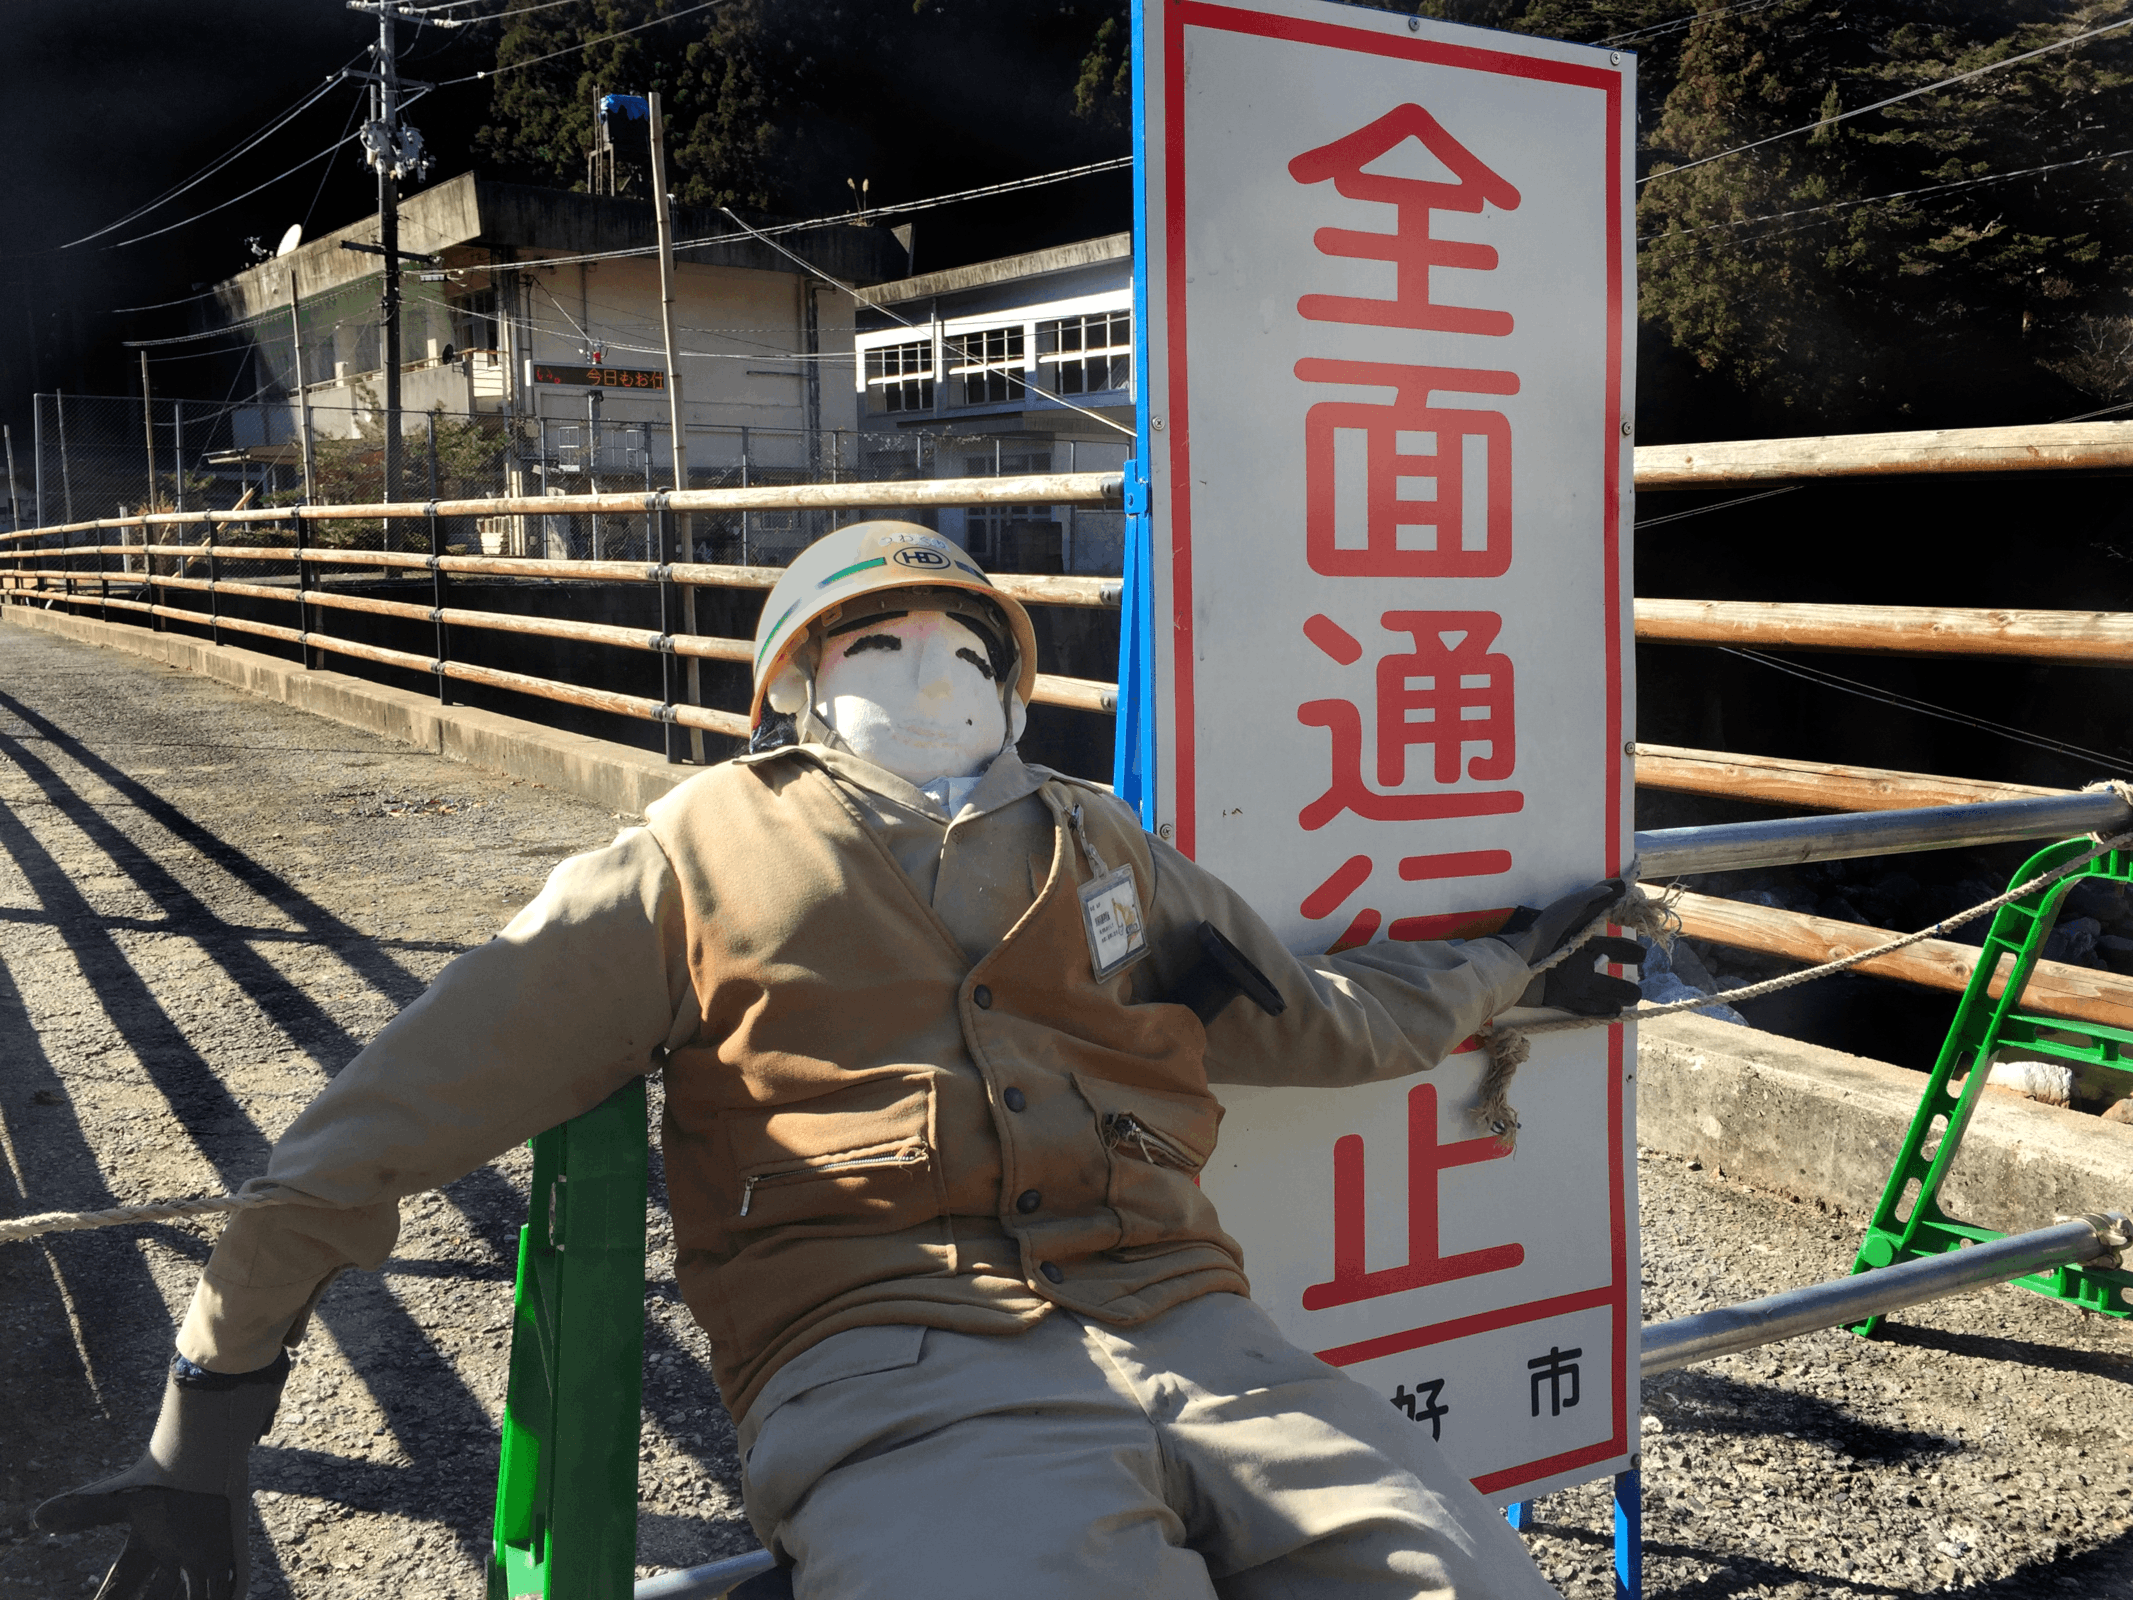 Kakashi scarecrow in Nagoro, Japan